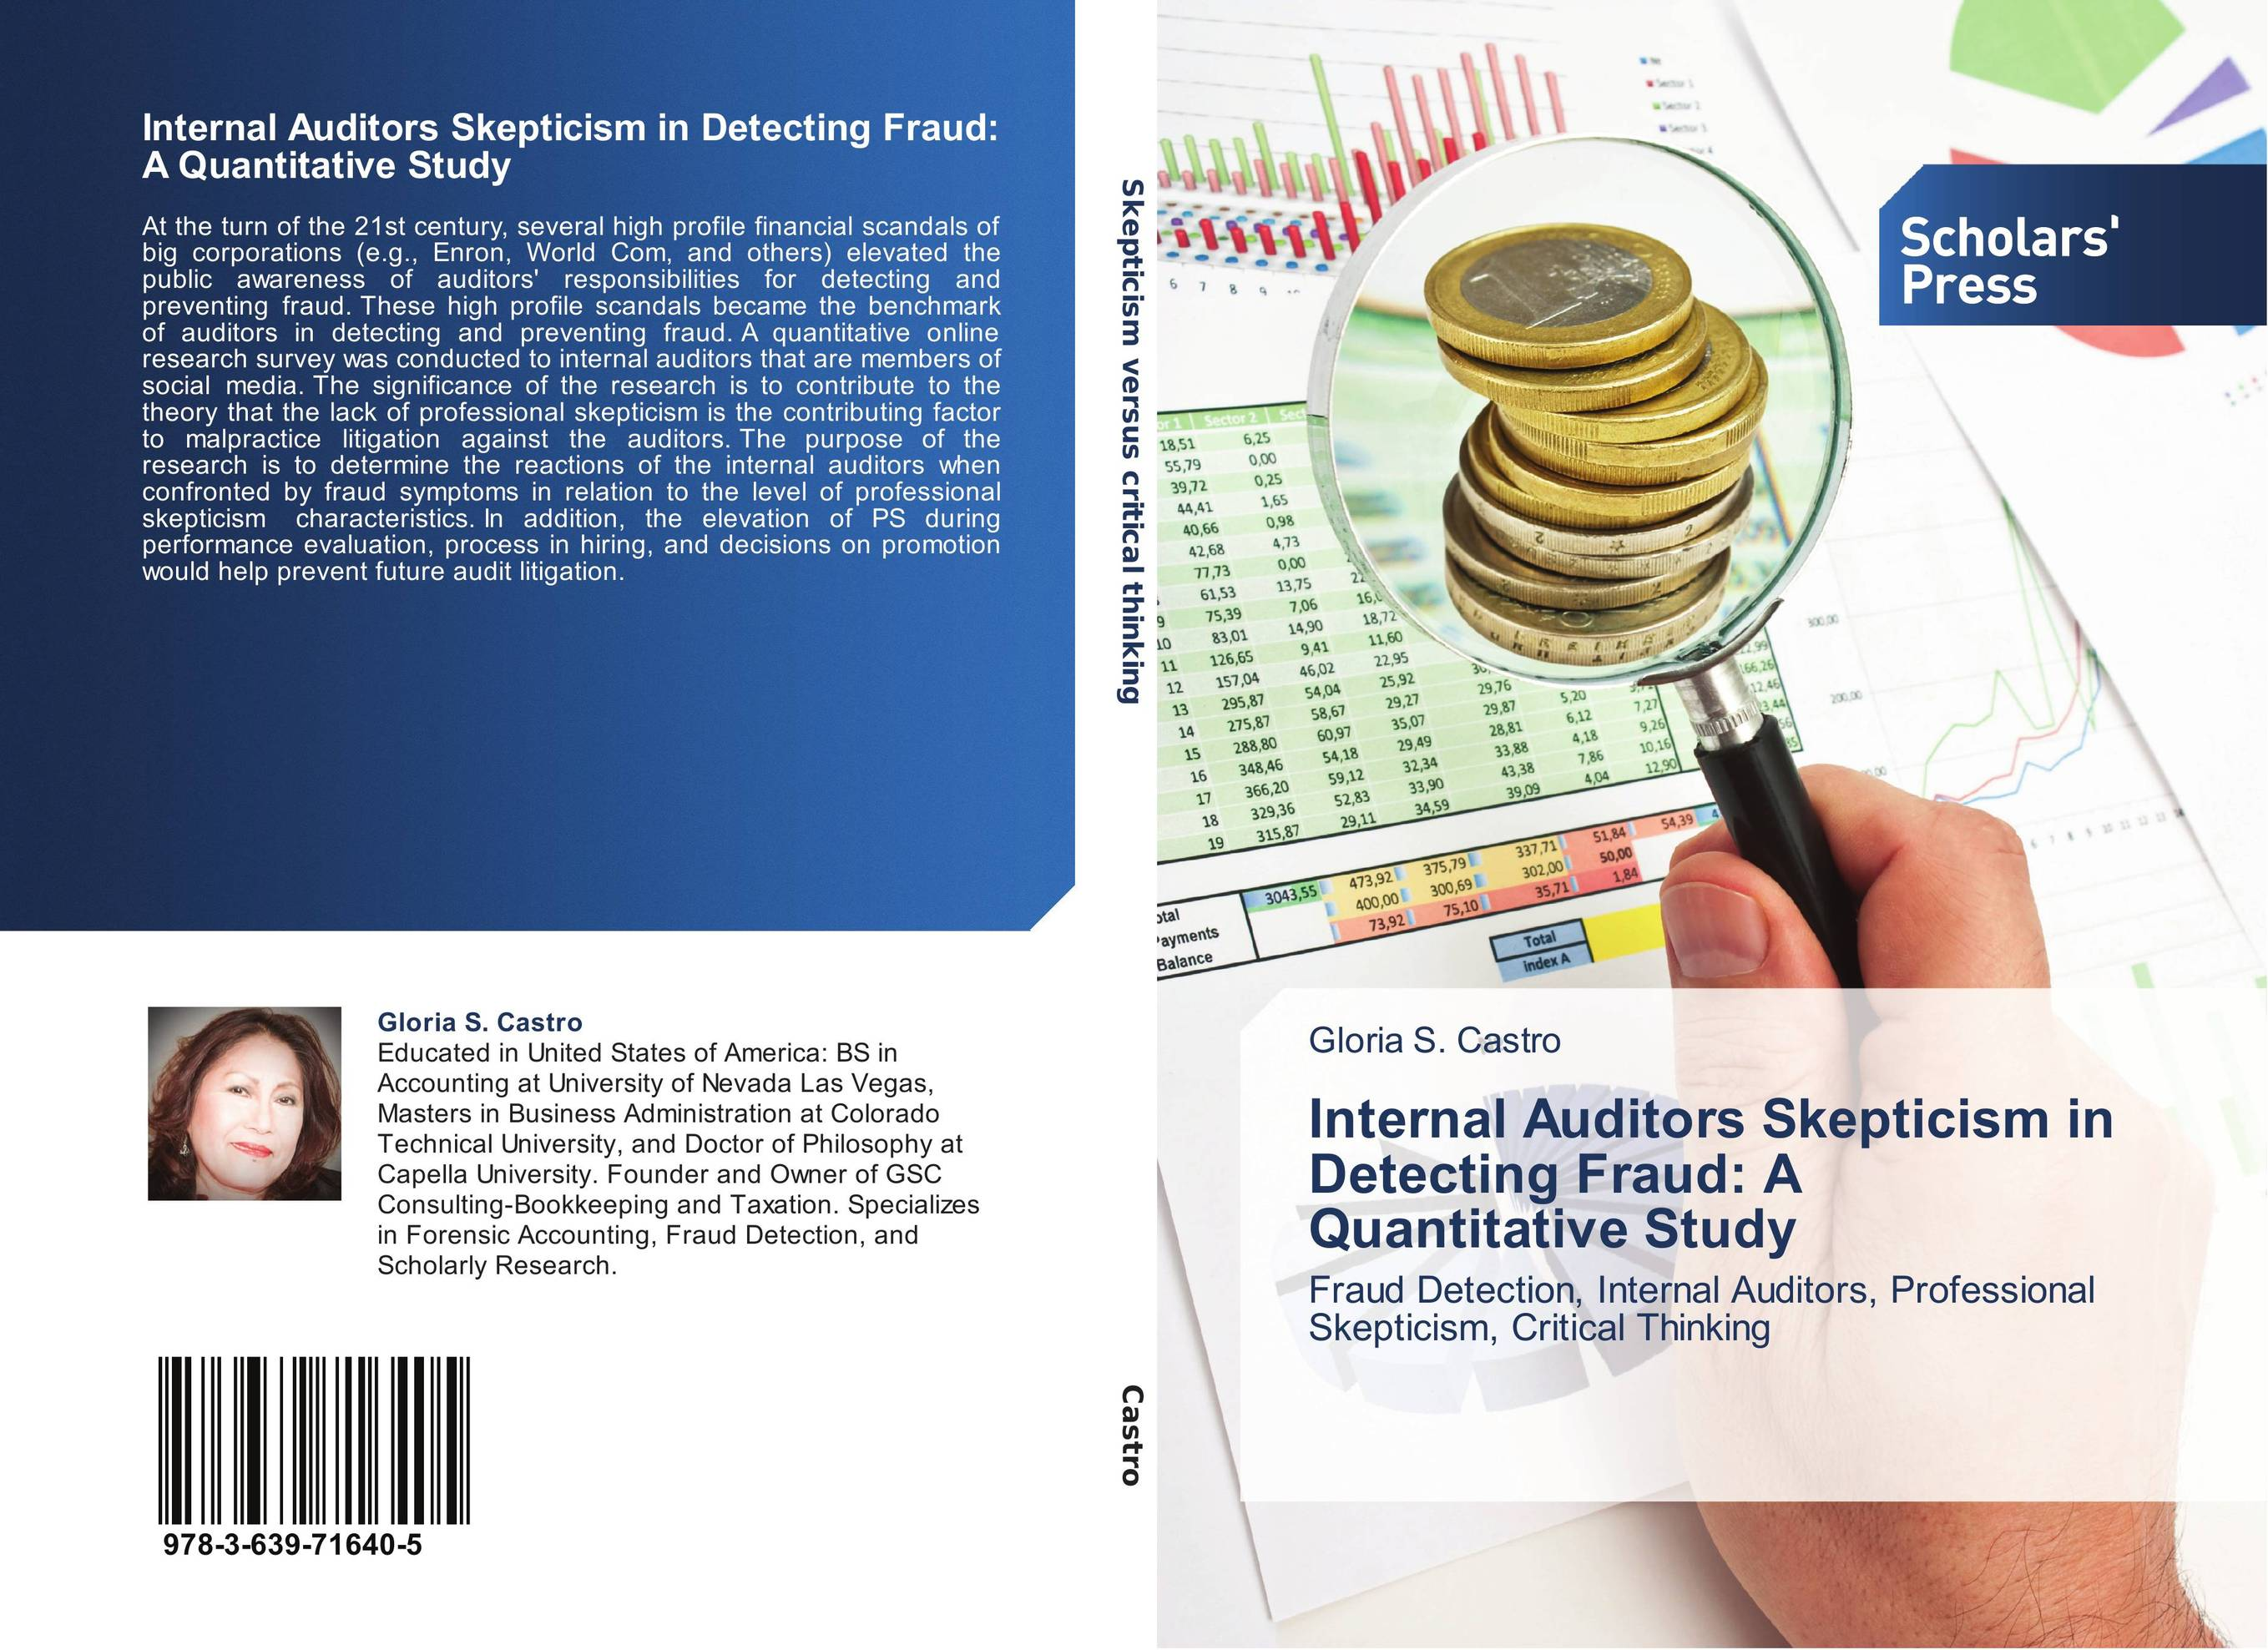 the sec initiative on accounting fraud detection An external auditor performs an audit, in accordance with specific laws or rules, of the financial statements of a company, government entity, other legal entity, or organization, and is independent of the entity being audited.